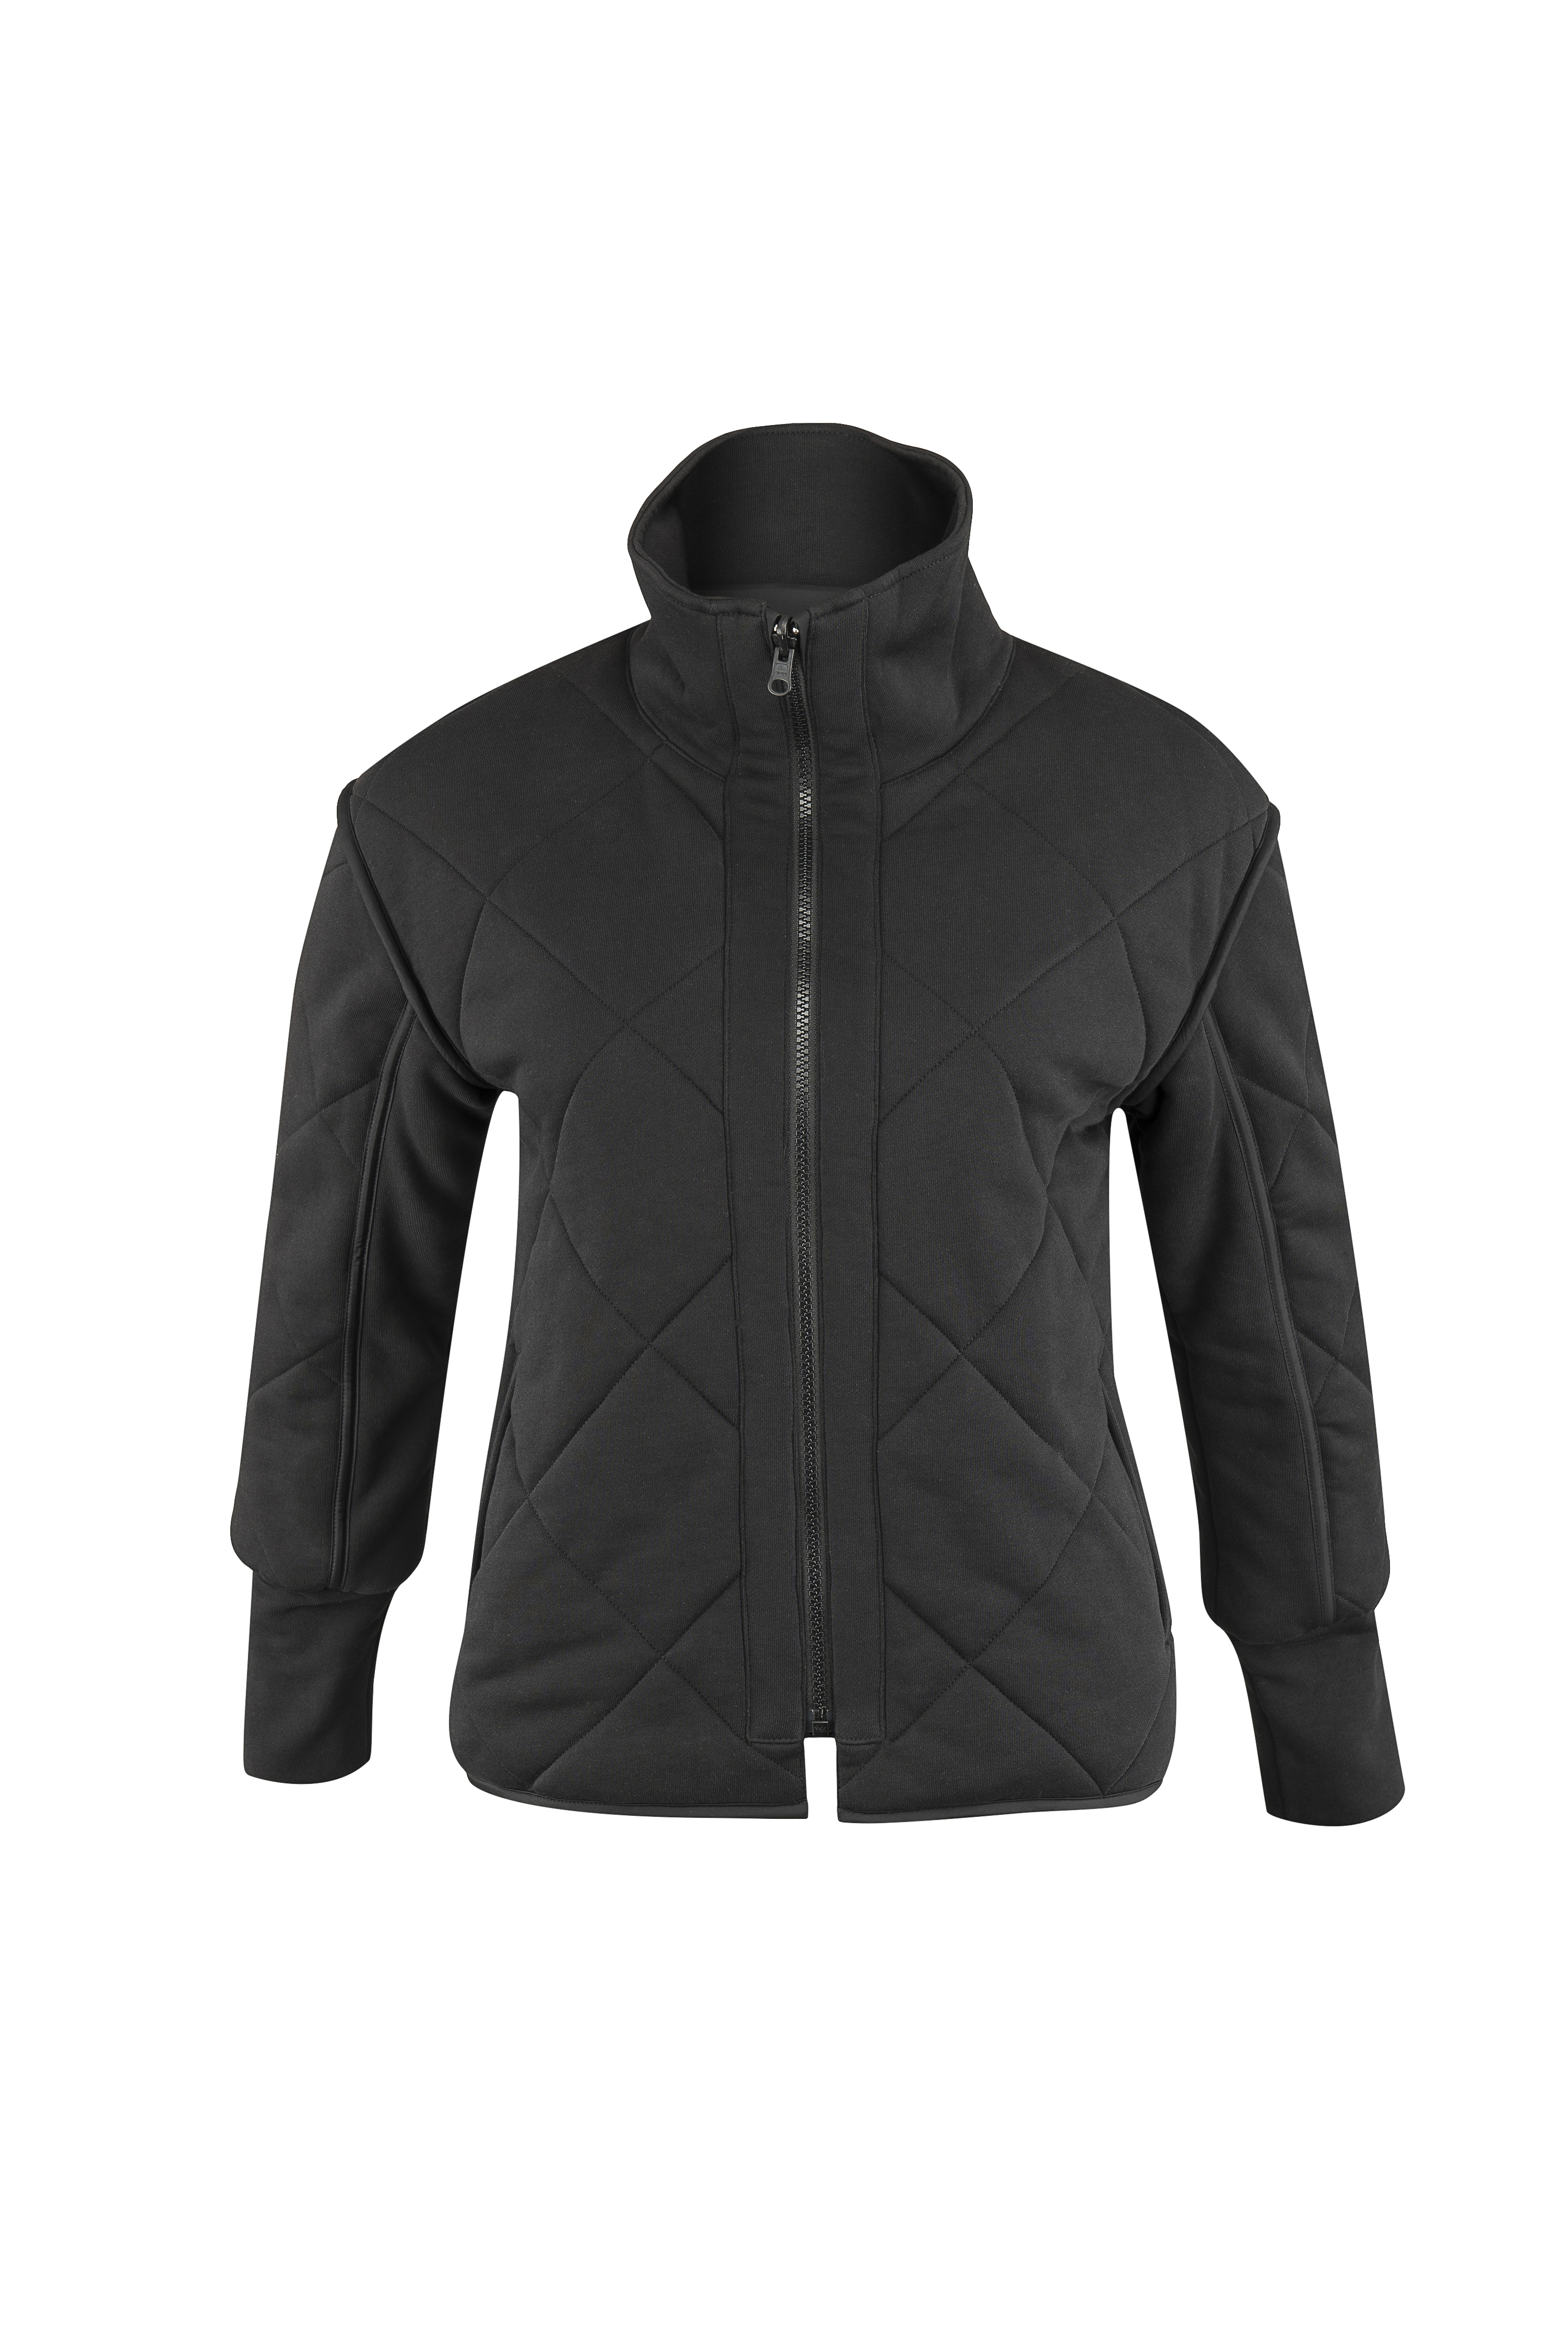 Lululemon Forever Warm Jacket // Price: $148 // (Image: Lululemon){&amp;nbsp;}<p></p>